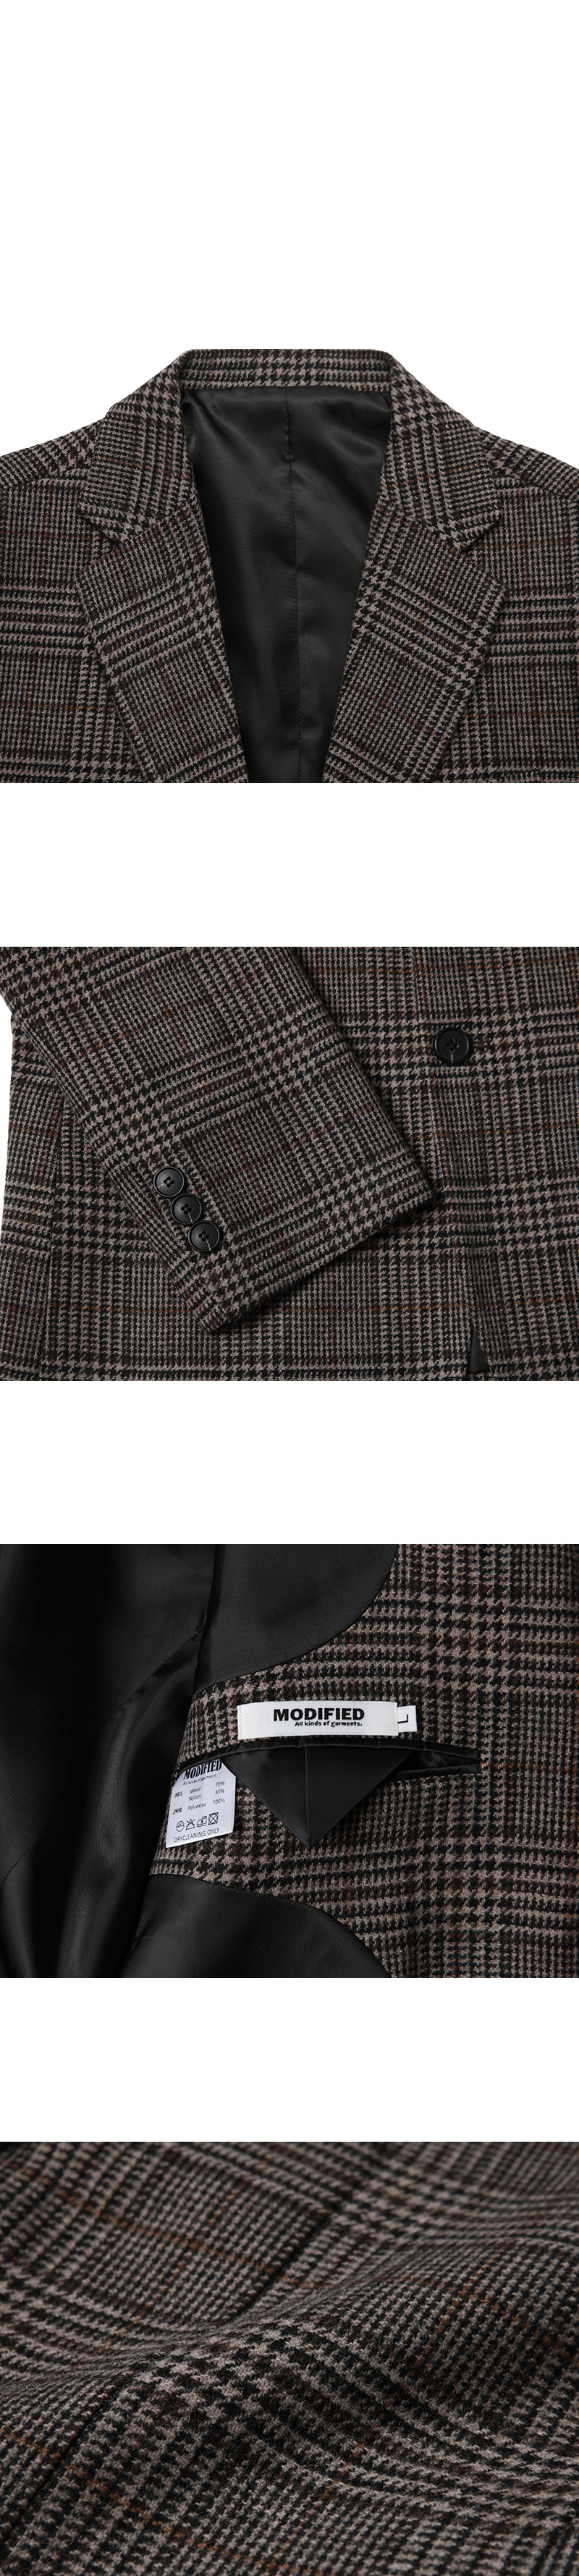 모디파이드(MODIFIED) M#1690 winter glen check wool blazer